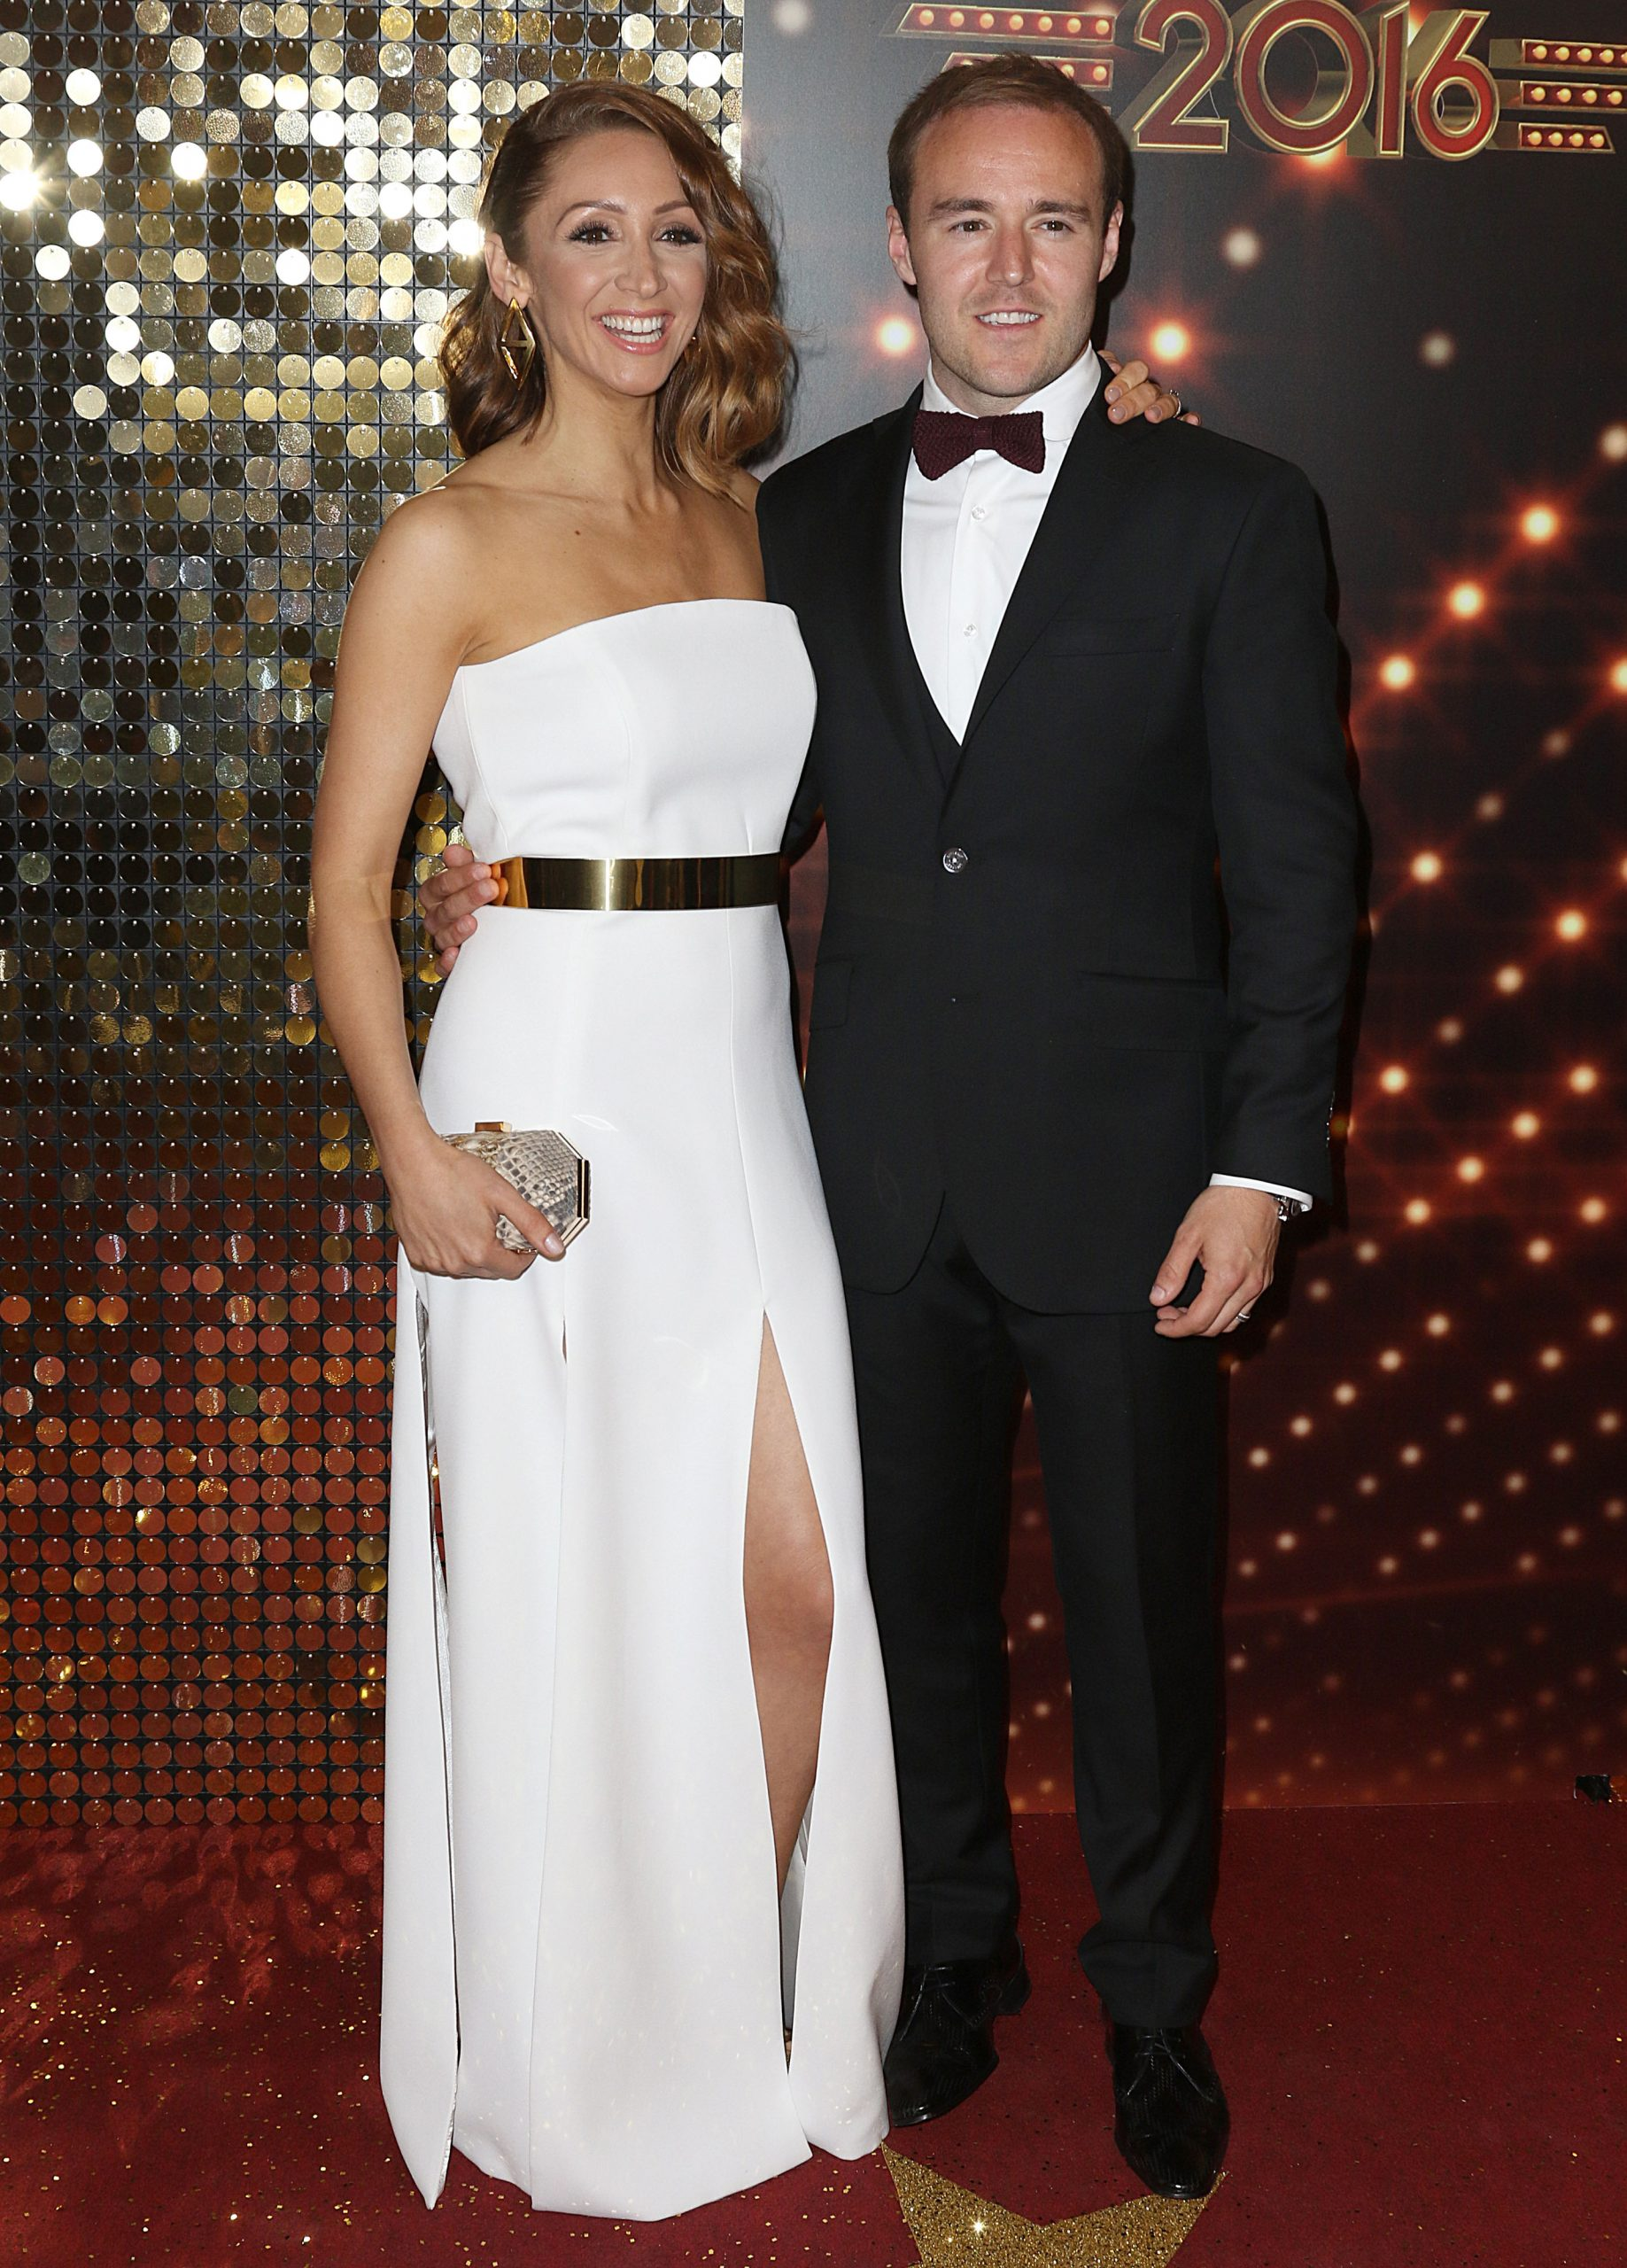 Coronation Street's Alan Halsall pays tribute to Tisha Merry as they celebrate a year together